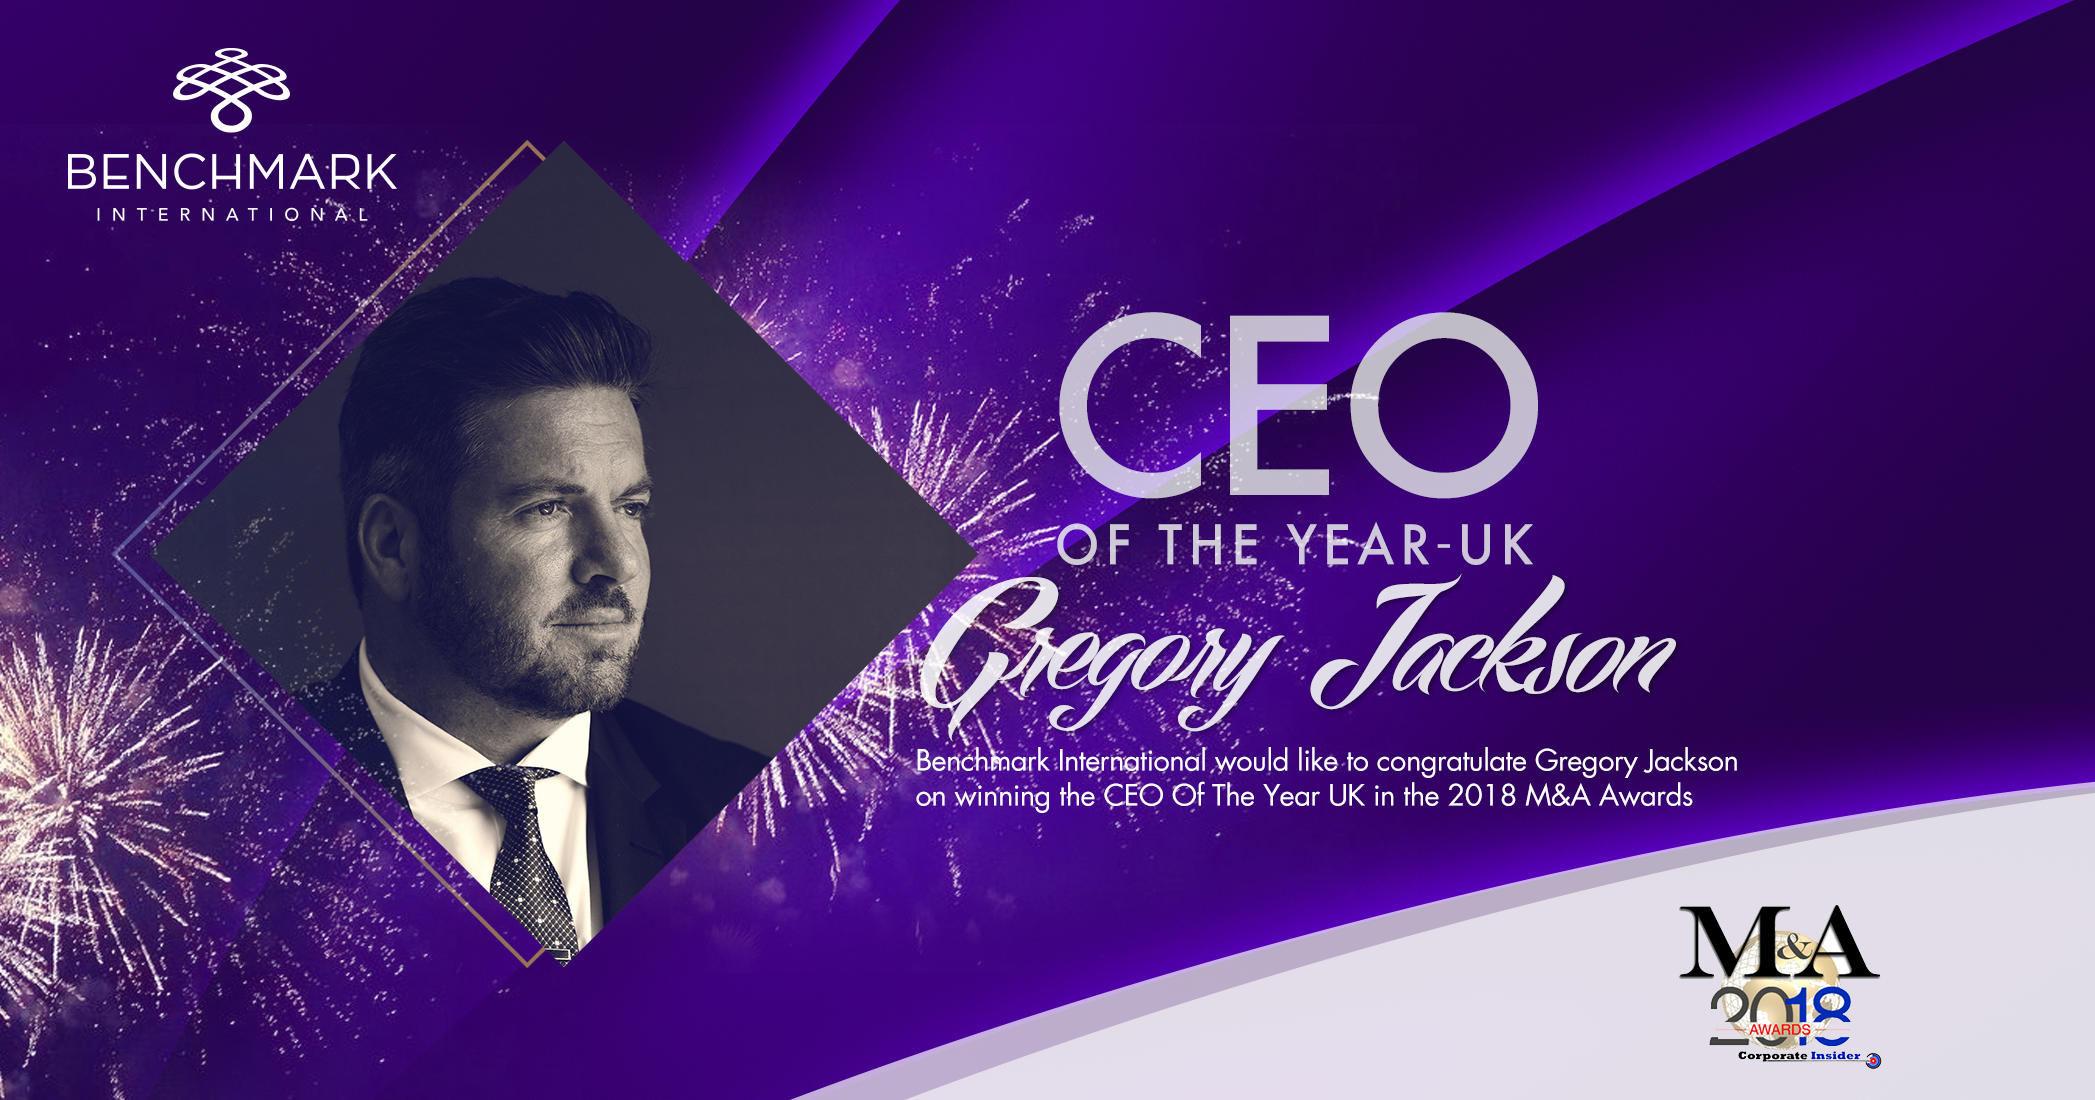 Gregory Jackson Named CEO of the Year by Corporate Insider